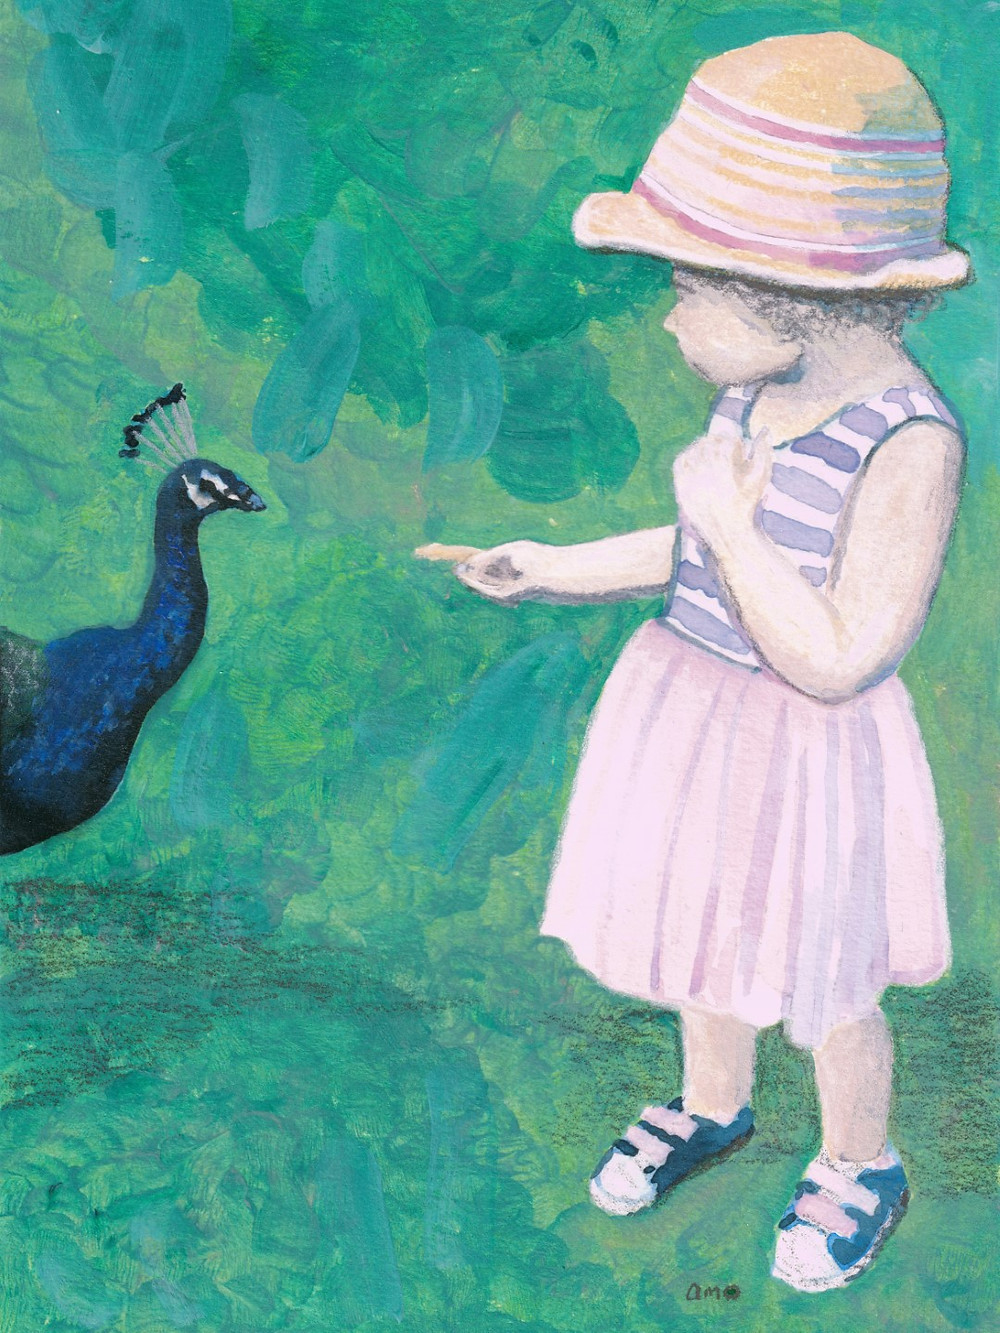 A painting of a young girl hand feeding a peacock some food.